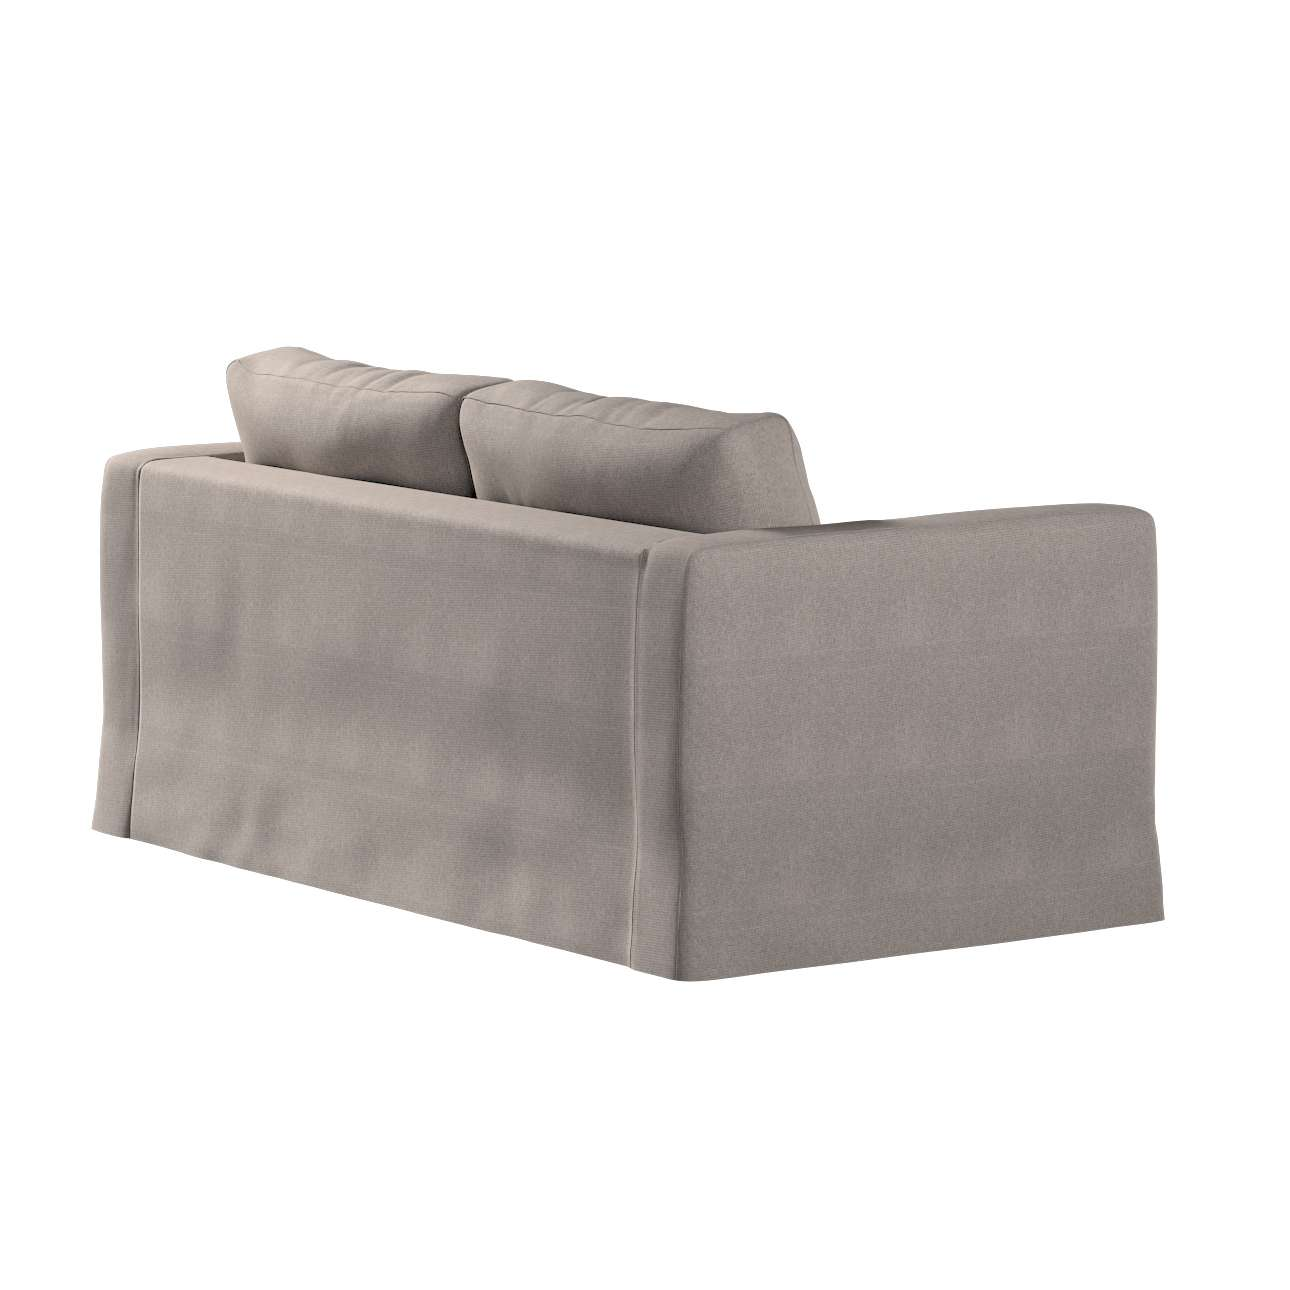 Floor length Karlstad 2-seater sofa cover in collection Etna, fabric: 705-09